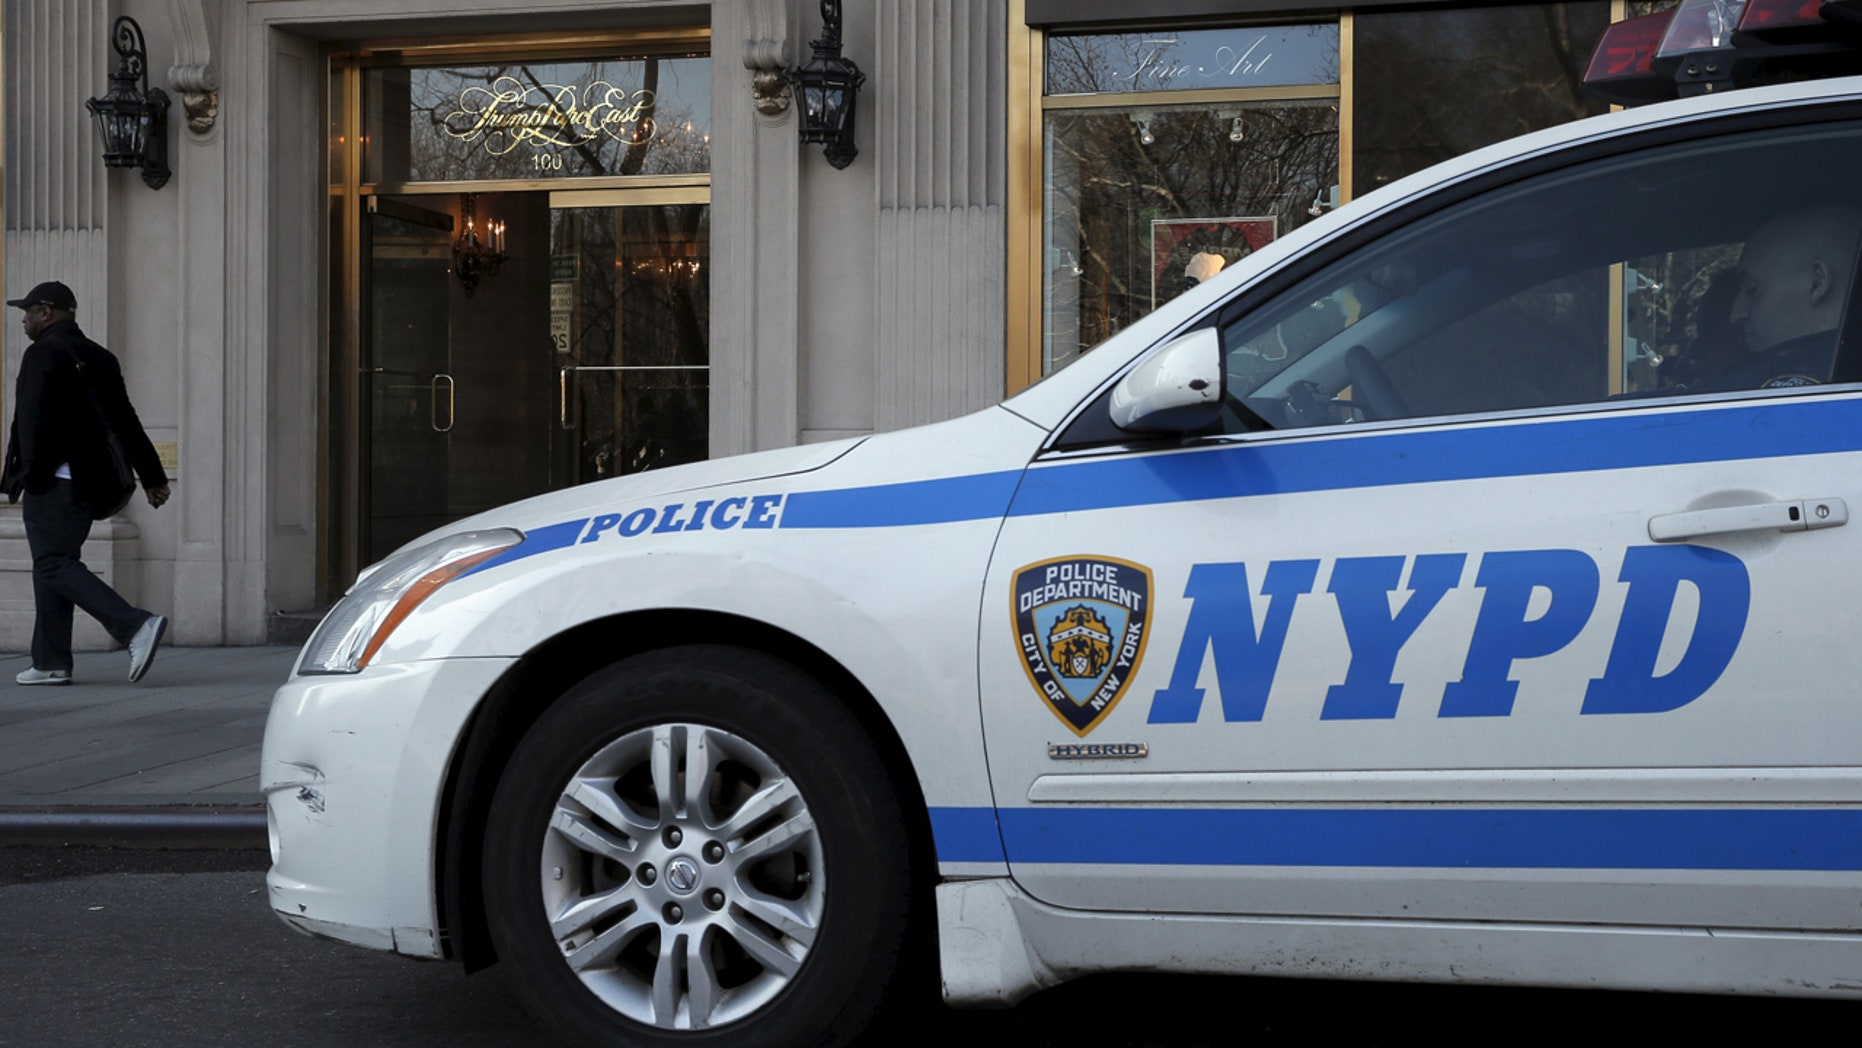 A New York City Police (NYPD) car as seen on March 18, 2016.